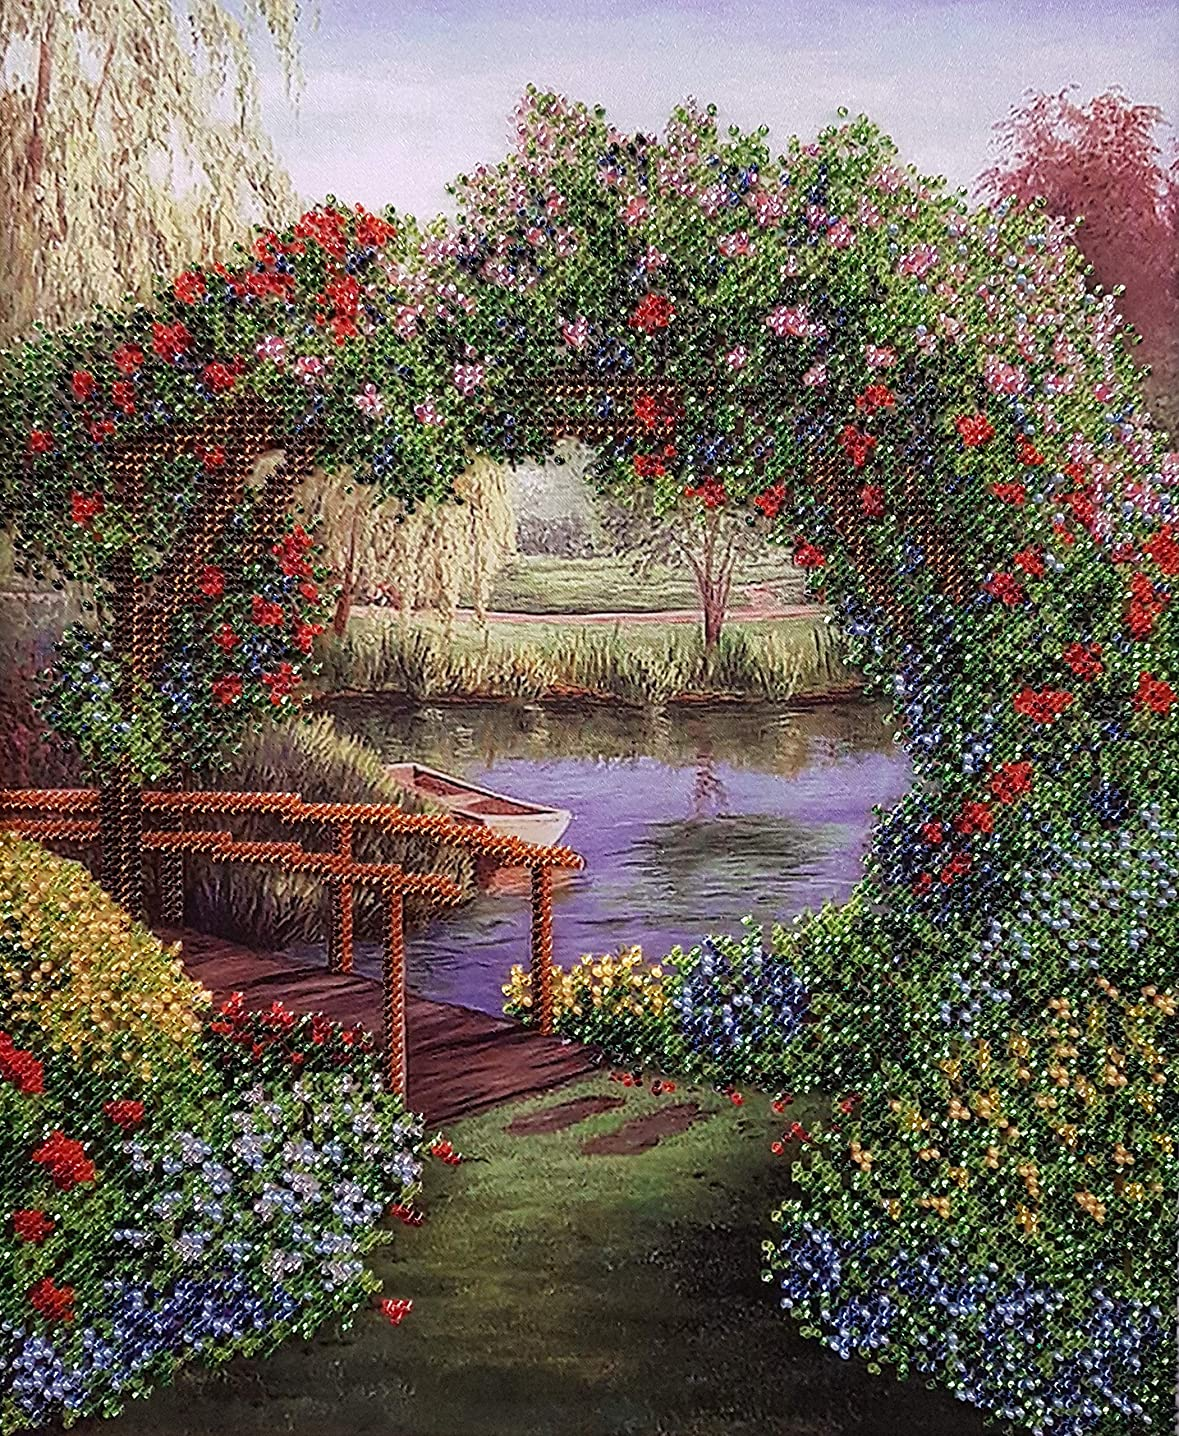 AllAboutEmbroideryUA Bead Embroidery kit Silent Landscape Beaded Cross Stitch Flowers Needlepoint Handcraft Tapestry kit